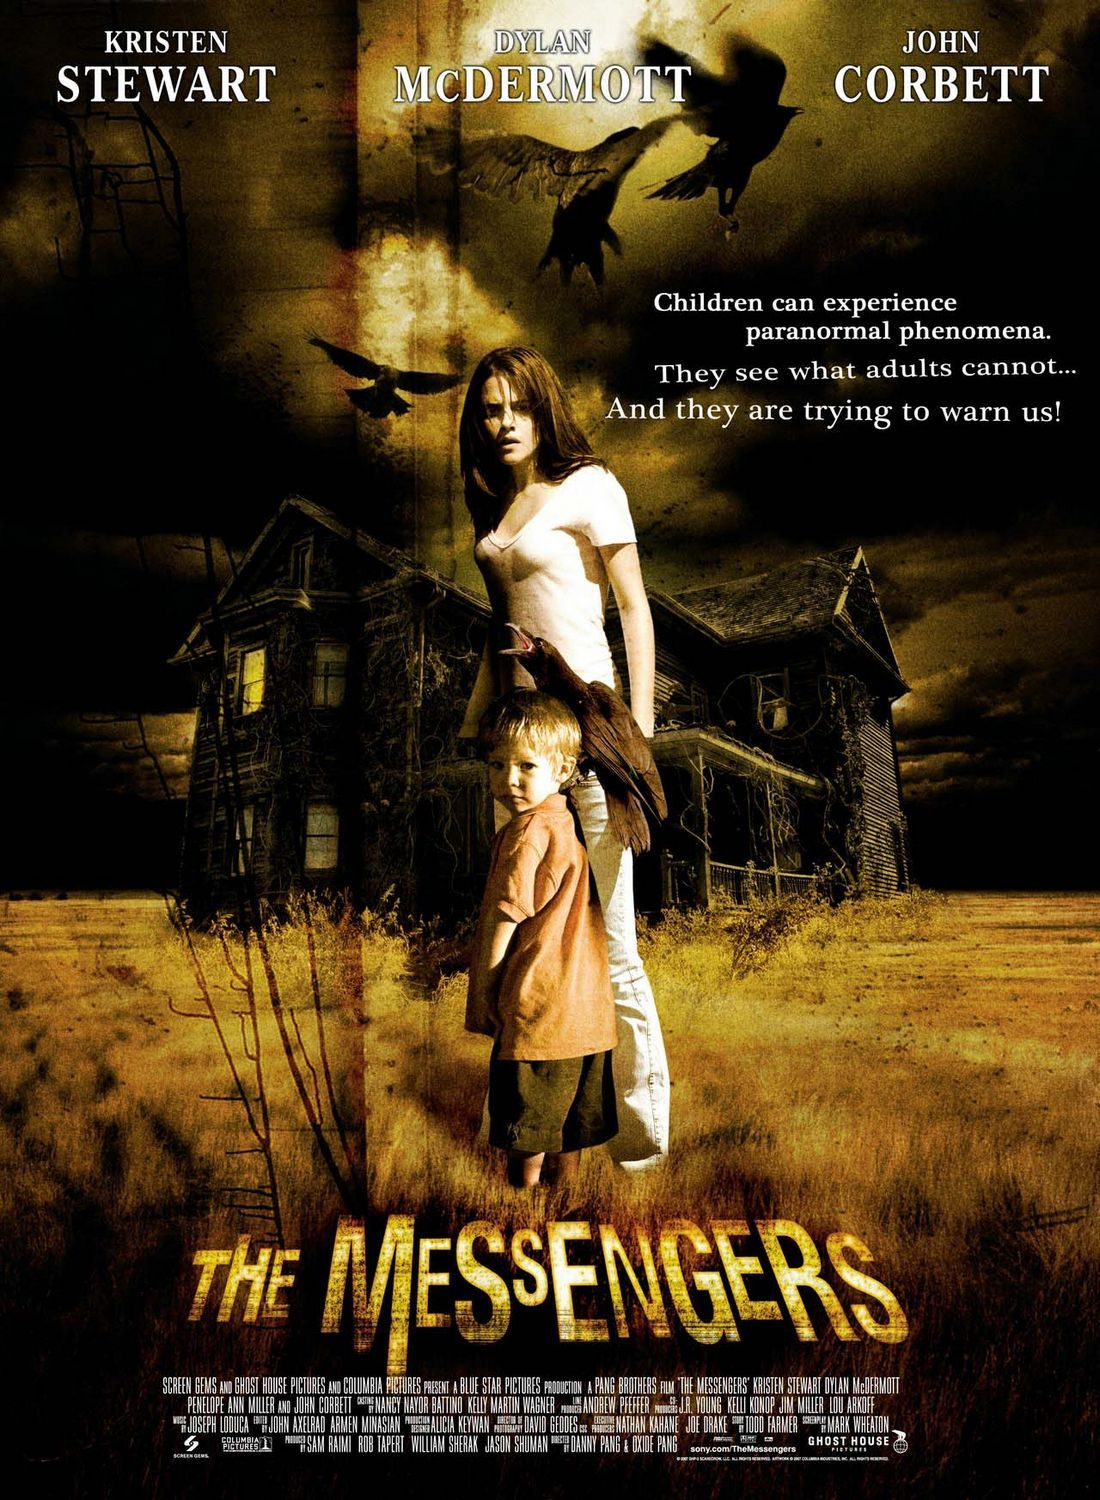 The Messengers Horror movie trailers, The messenger